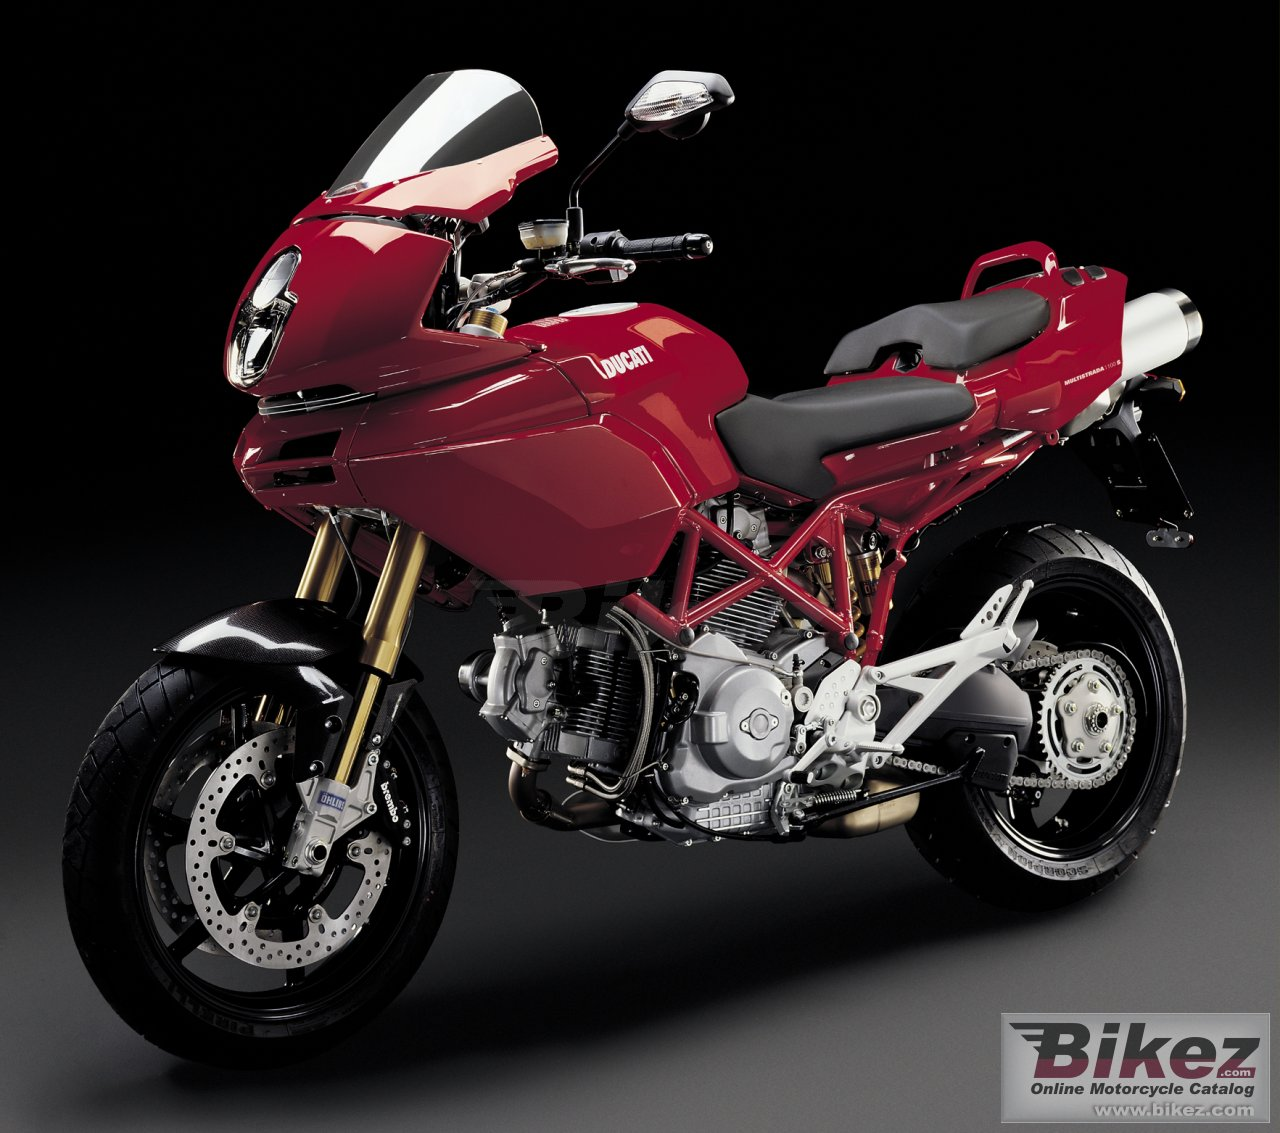 Big Ducati multistrada 1100 s picture and wallpaper from Bikez.com